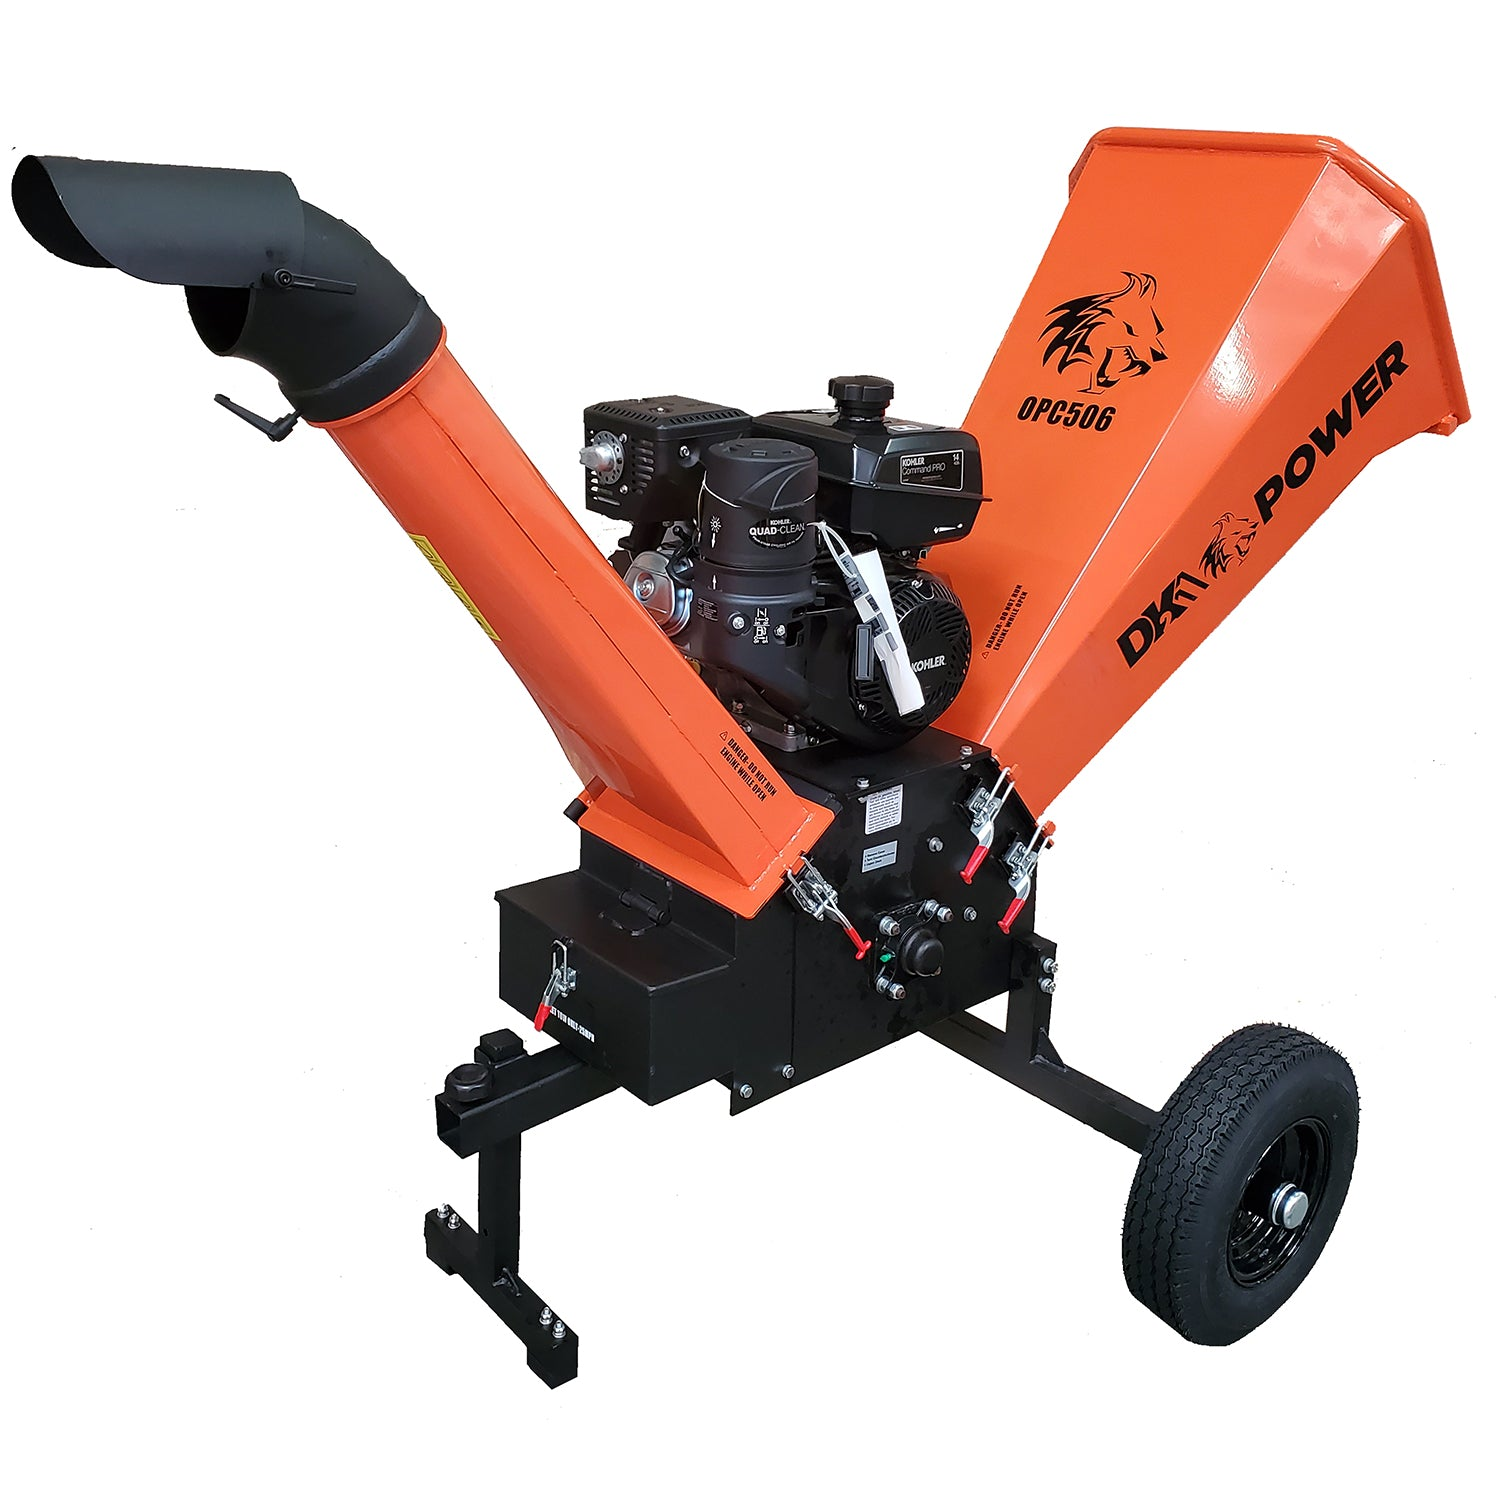 Detail K2 6 Inch 14 HP Cyclonic Chipper Shredder - OPC506-Wood Splitter Outlet